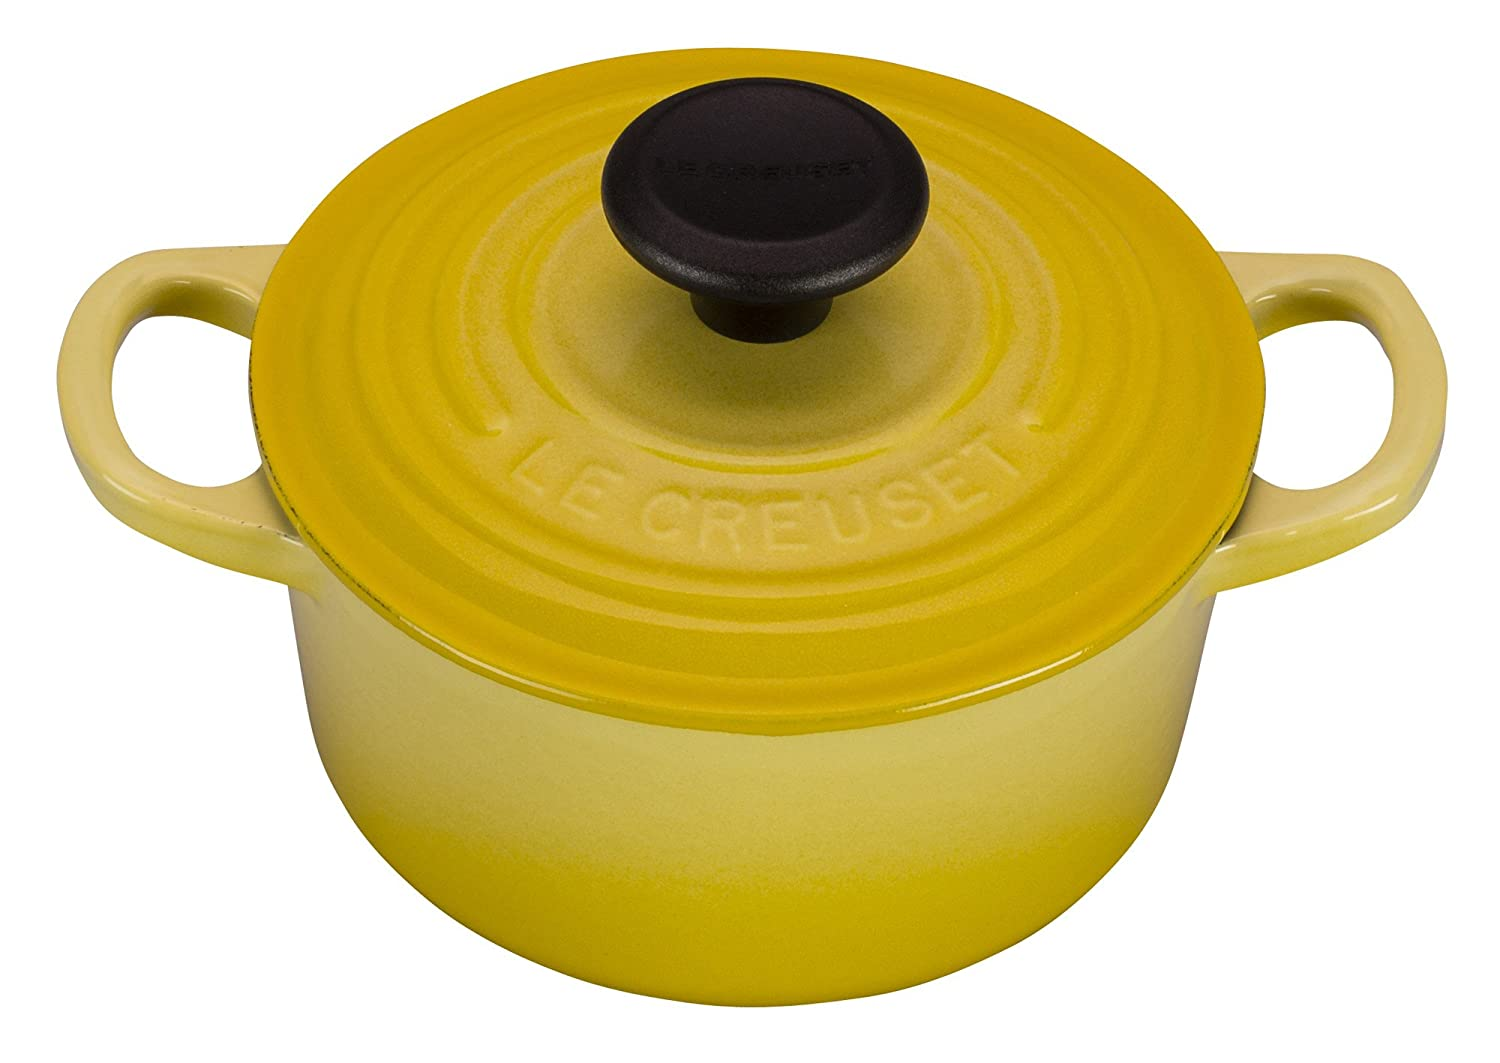 TOP 7 Best Camping DUTCH OVEN (2020 Reviews & Buying Guide) 1